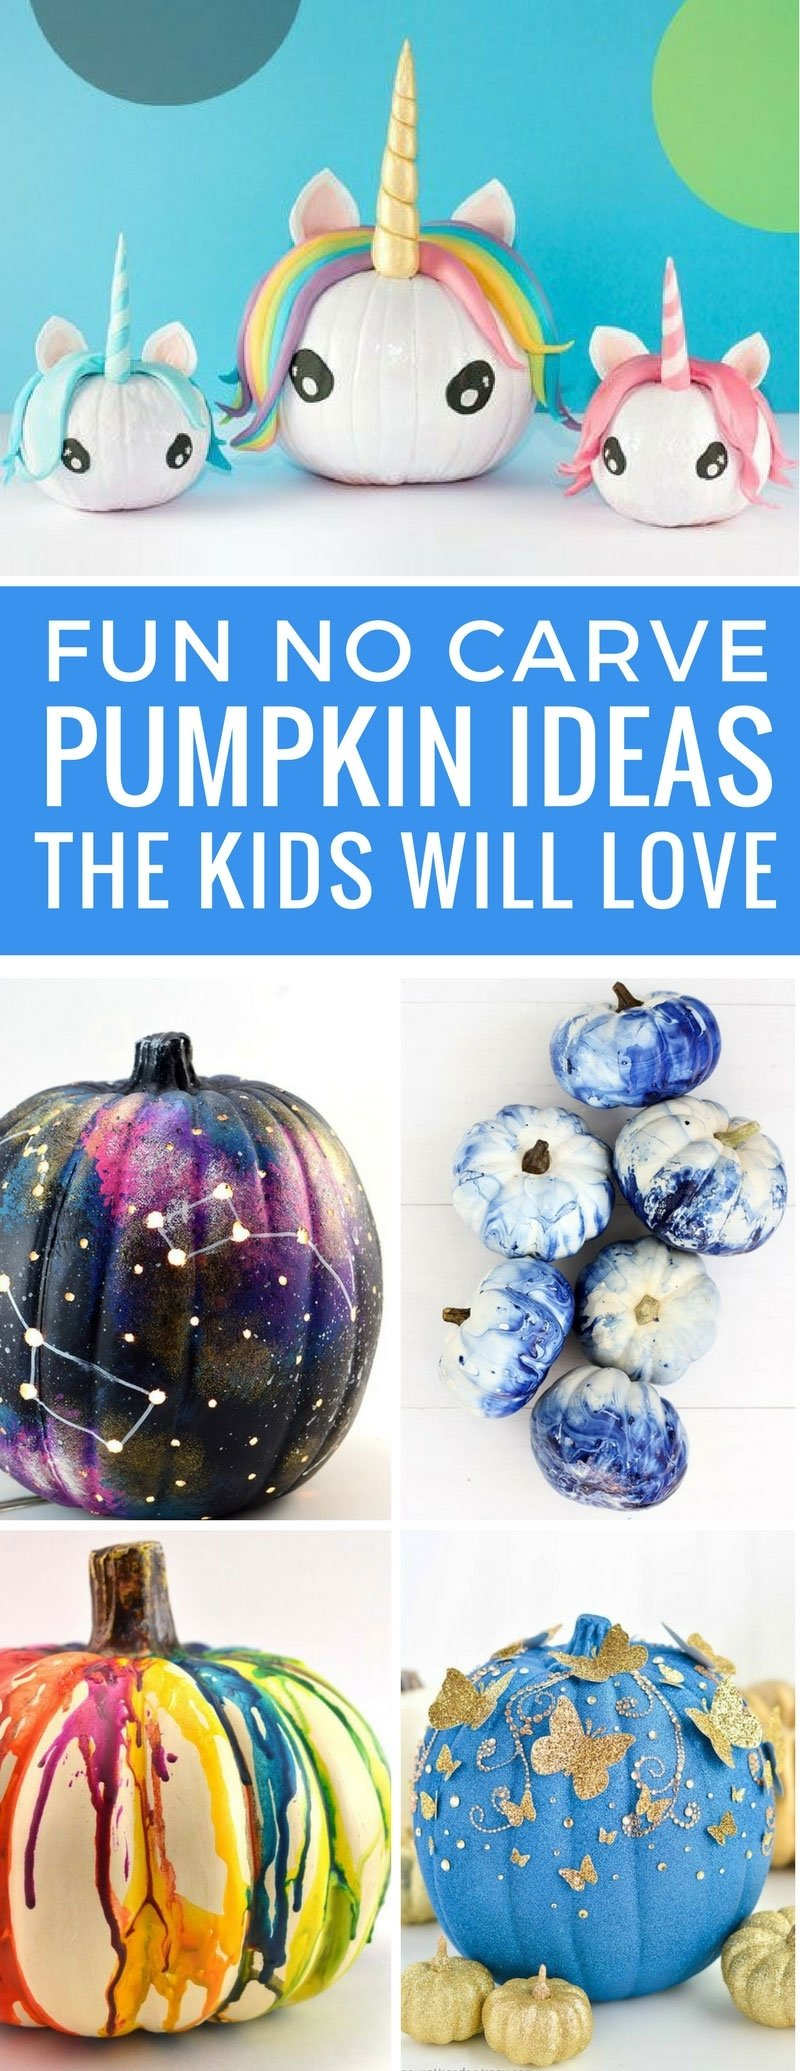 10 Stunning No Carve Pumpkin Decorating Ideas For Kids 25 unusual pumpkin decorating ideas without carving 2 2020